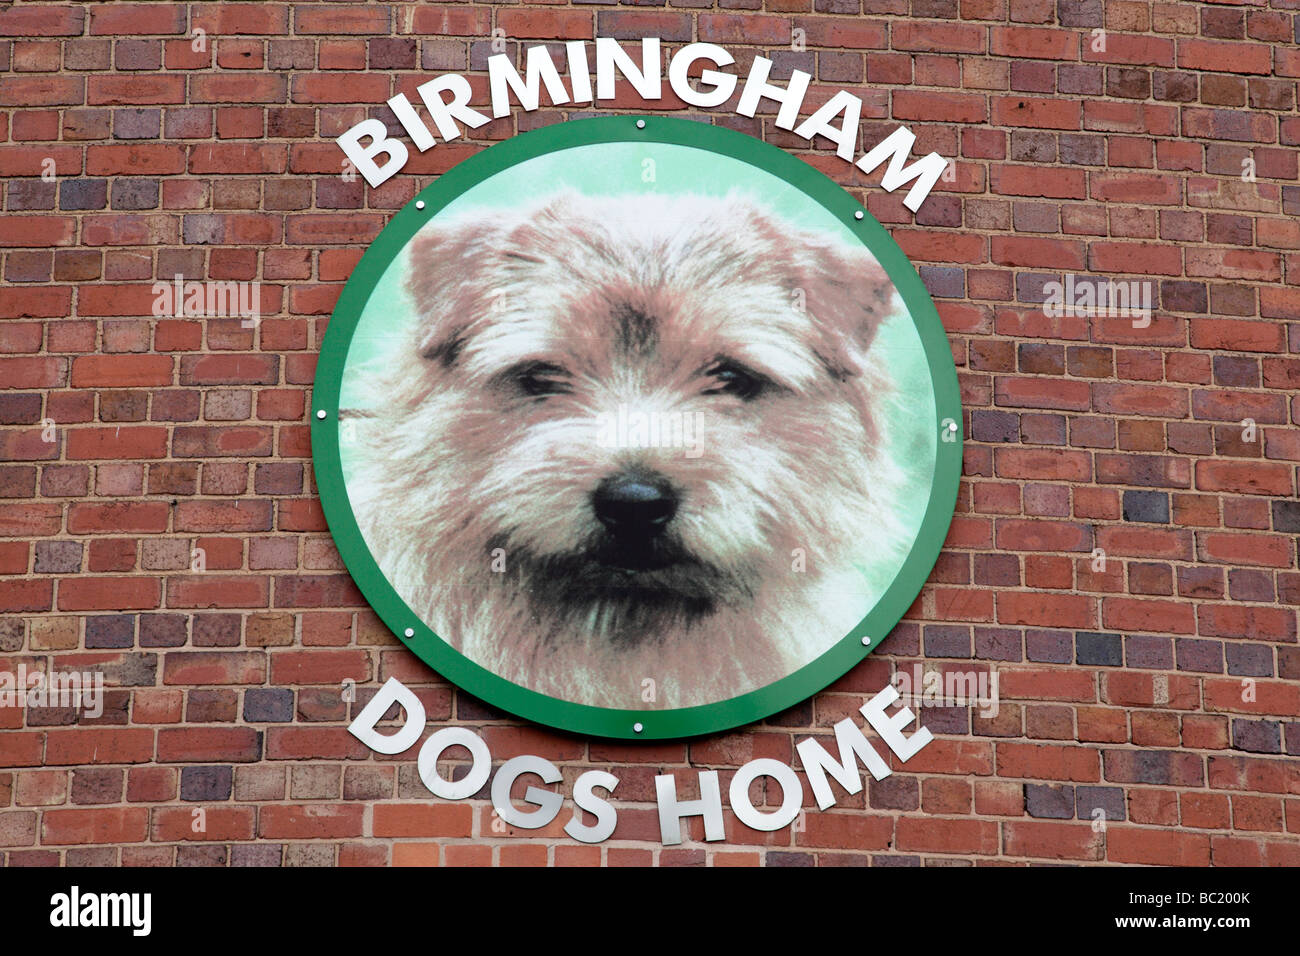 Birmingham Dogs Home Digbeth